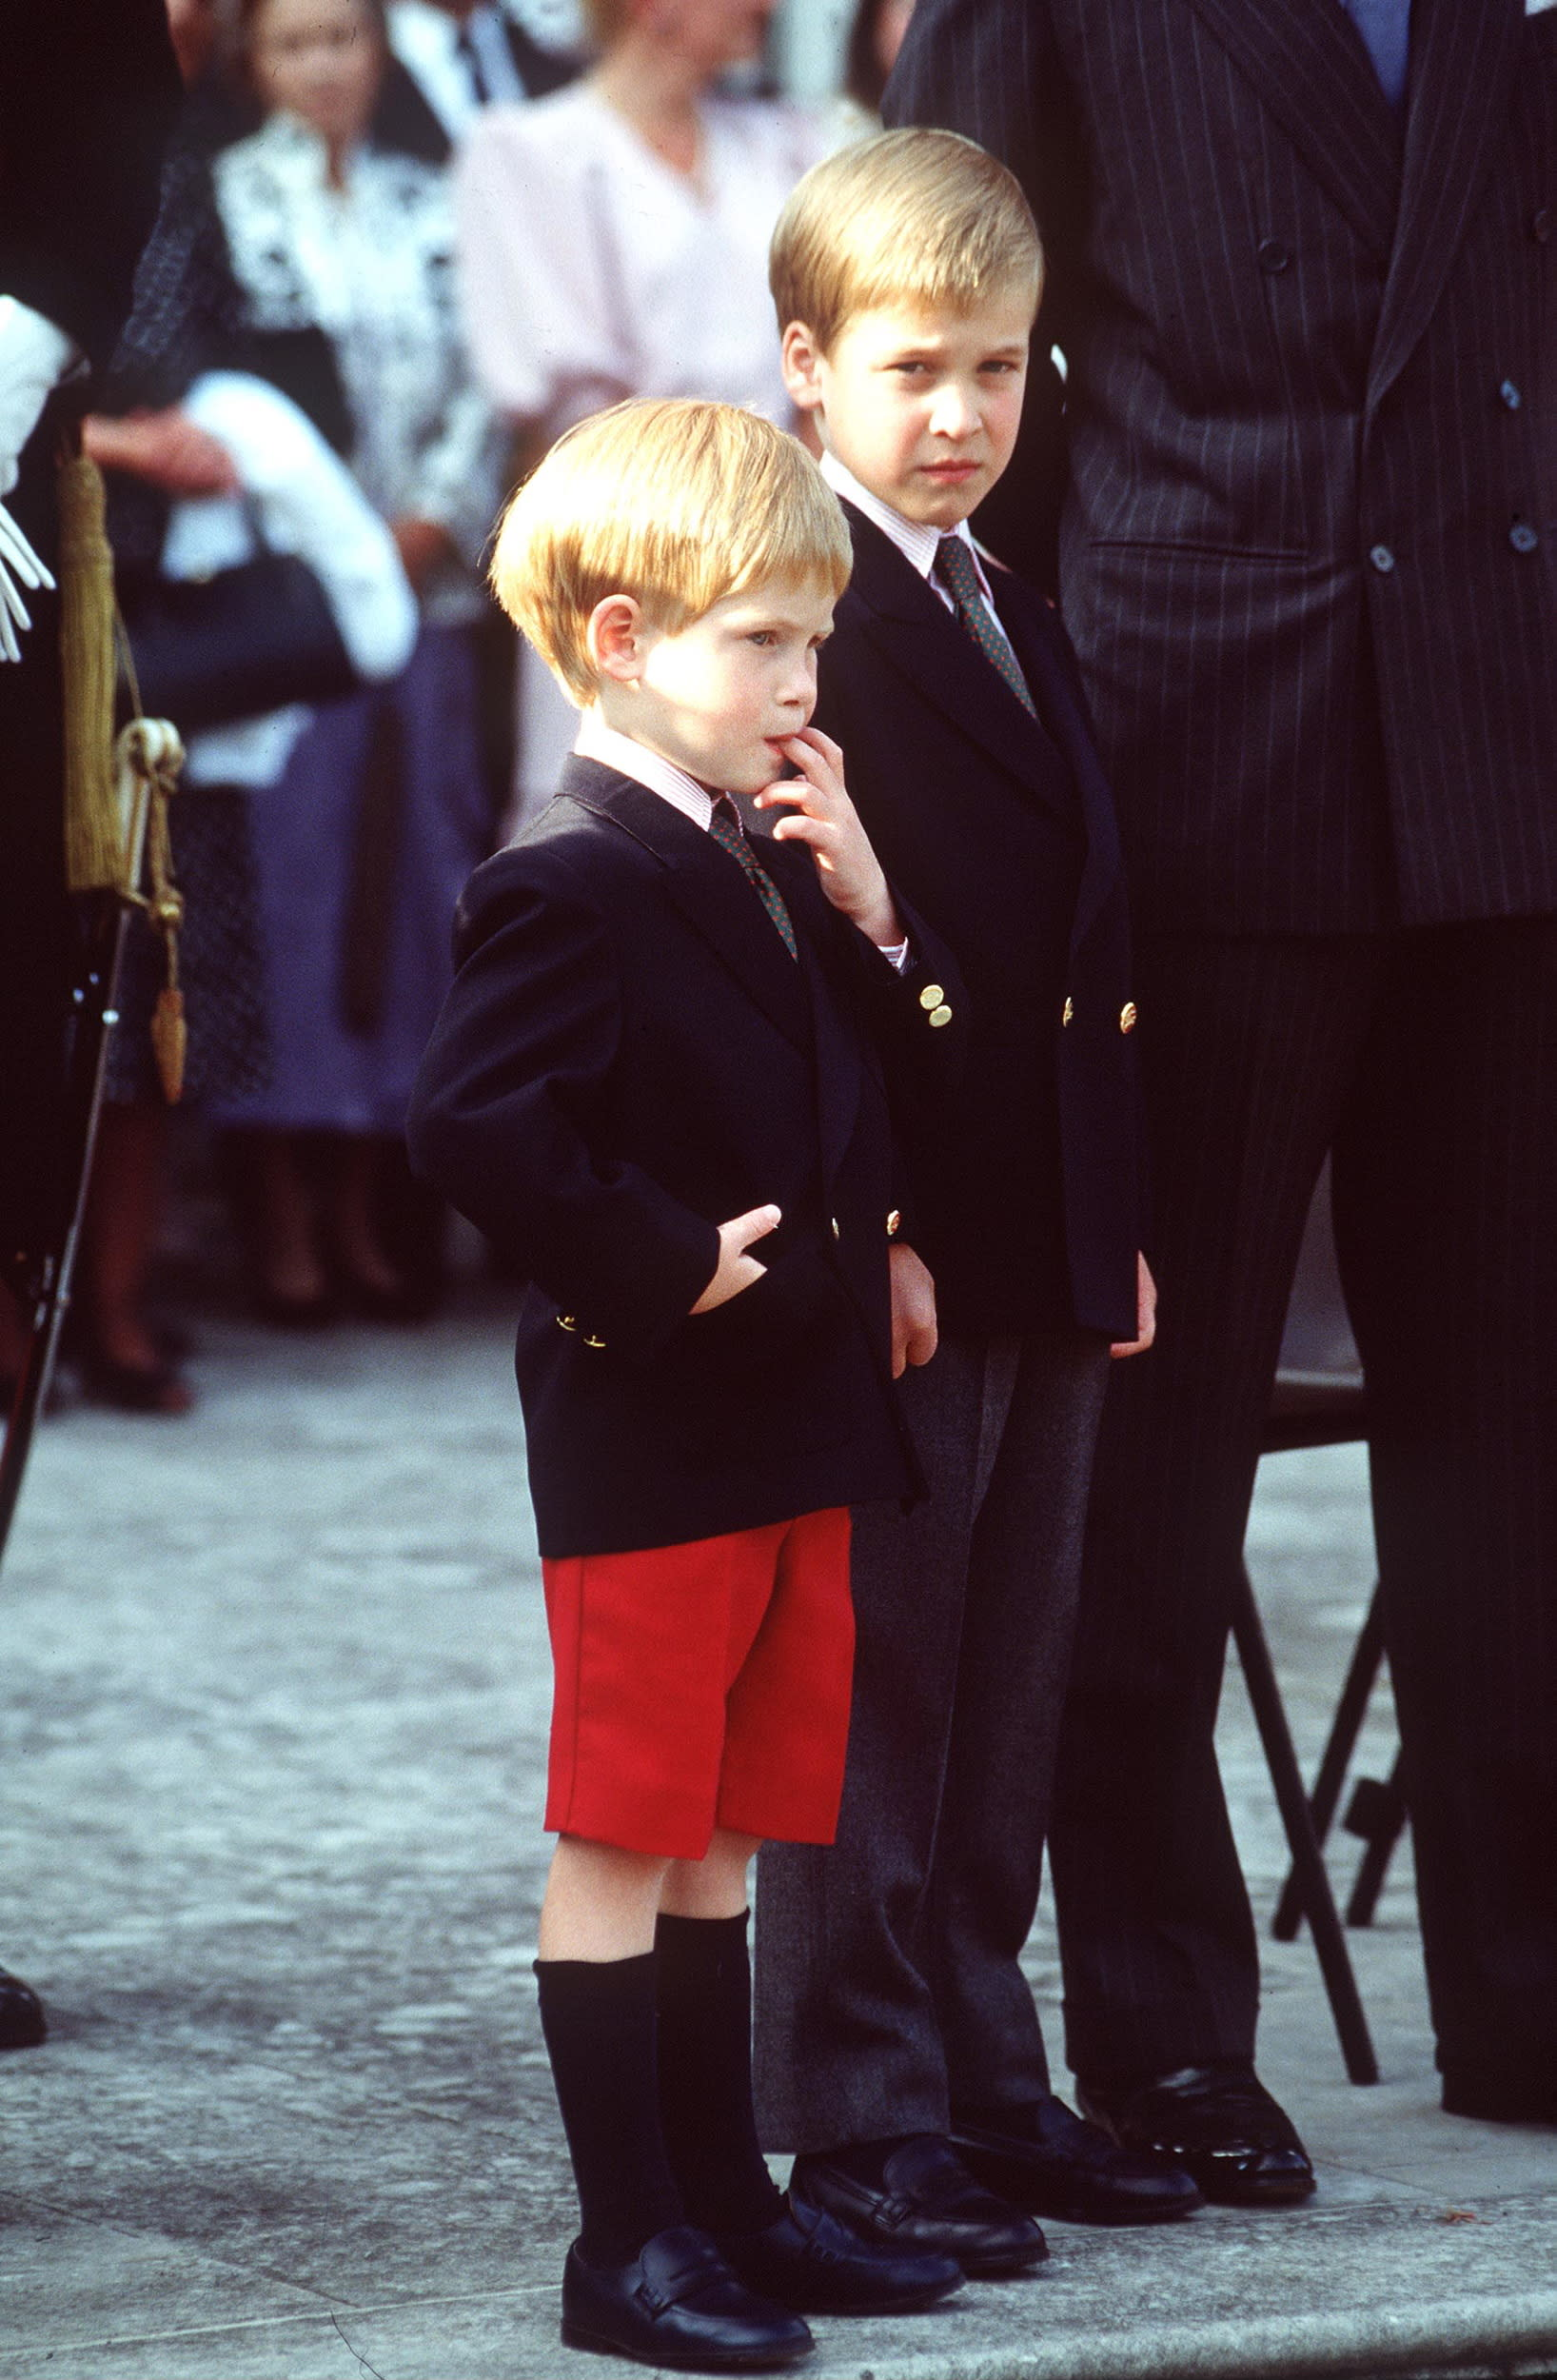 LONDON, UNITED KINGDOM - JUNE 29:  Shy Prince Harry With His Finger In His Mouth Stands With His Brotehr Prince William At Their First Official Event - Beating The  Retreat Parade At Kensington Palace.  (Photo by Tim Graham/Getty Images)